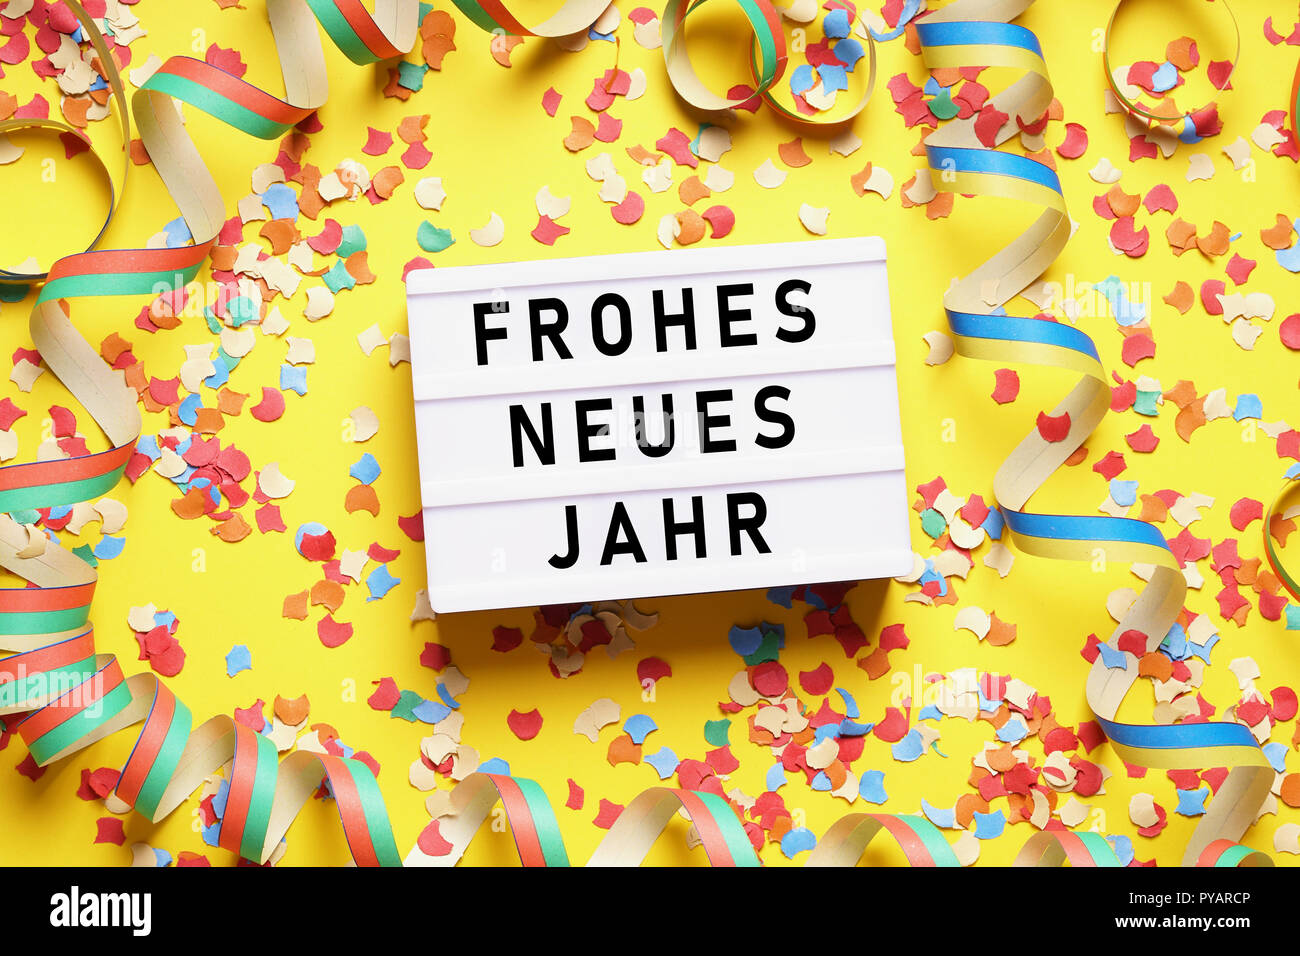 Frohes neues Jahr means happy new year in German - party celebration flat lay with confetti and streamers on yellow background - Stock Image